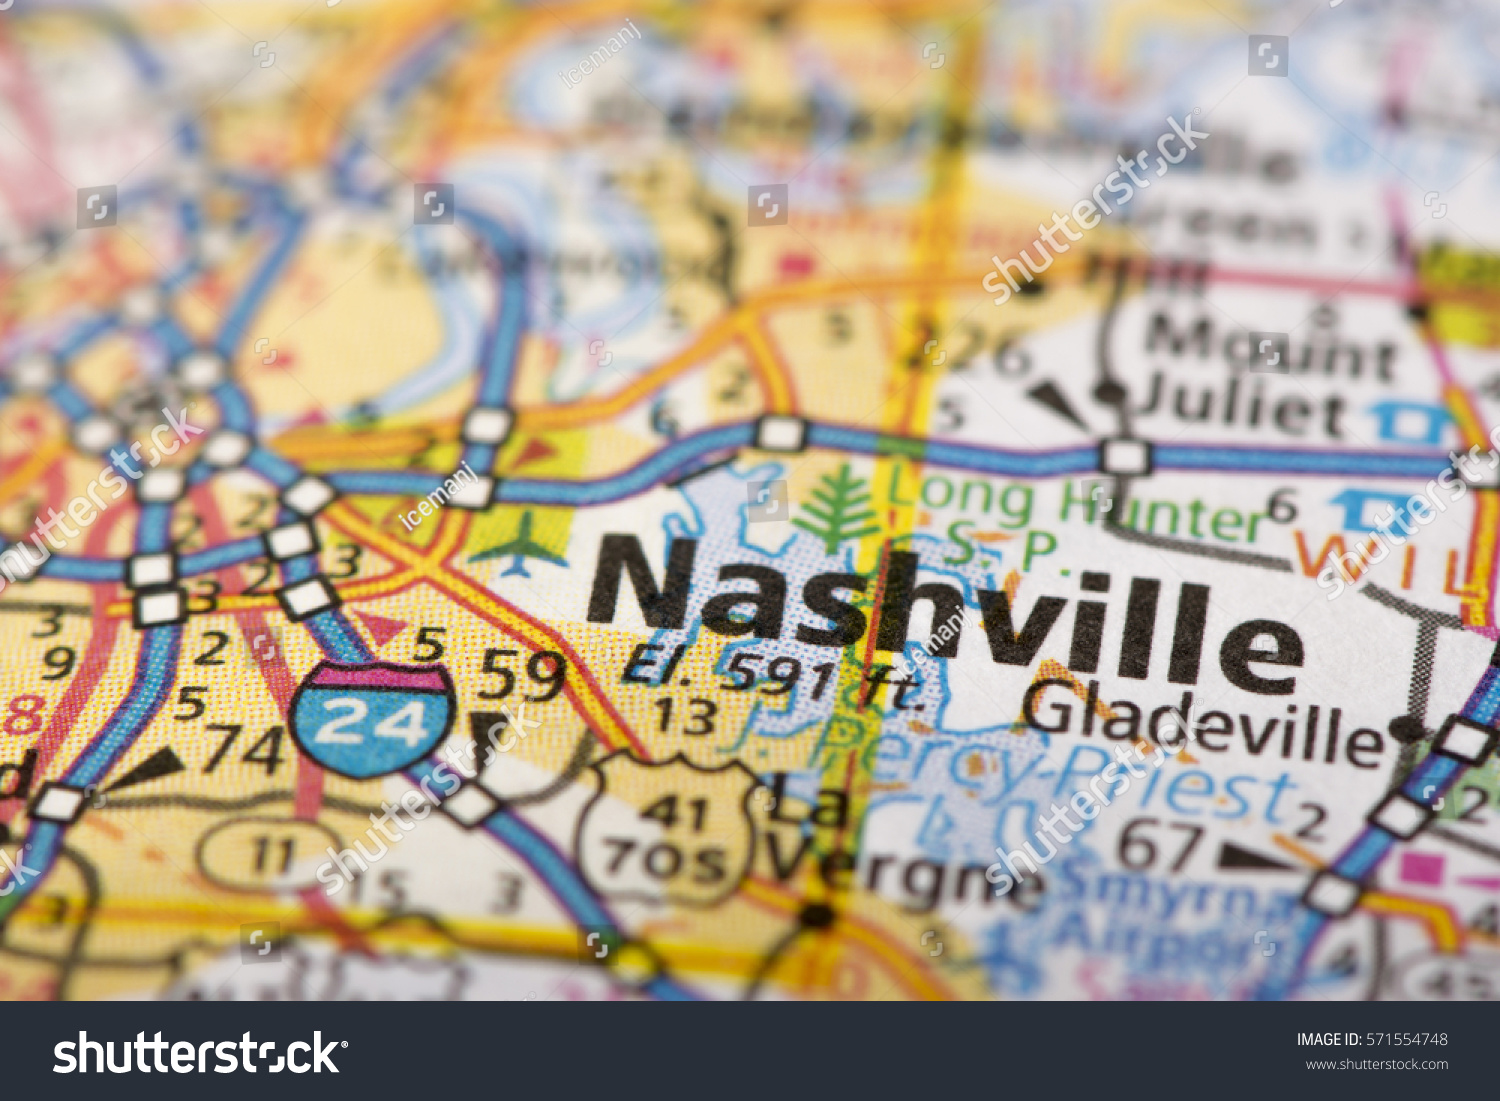 Closeup Nashville Tennessee On Road Map Stock Photo - Tennessee map united states